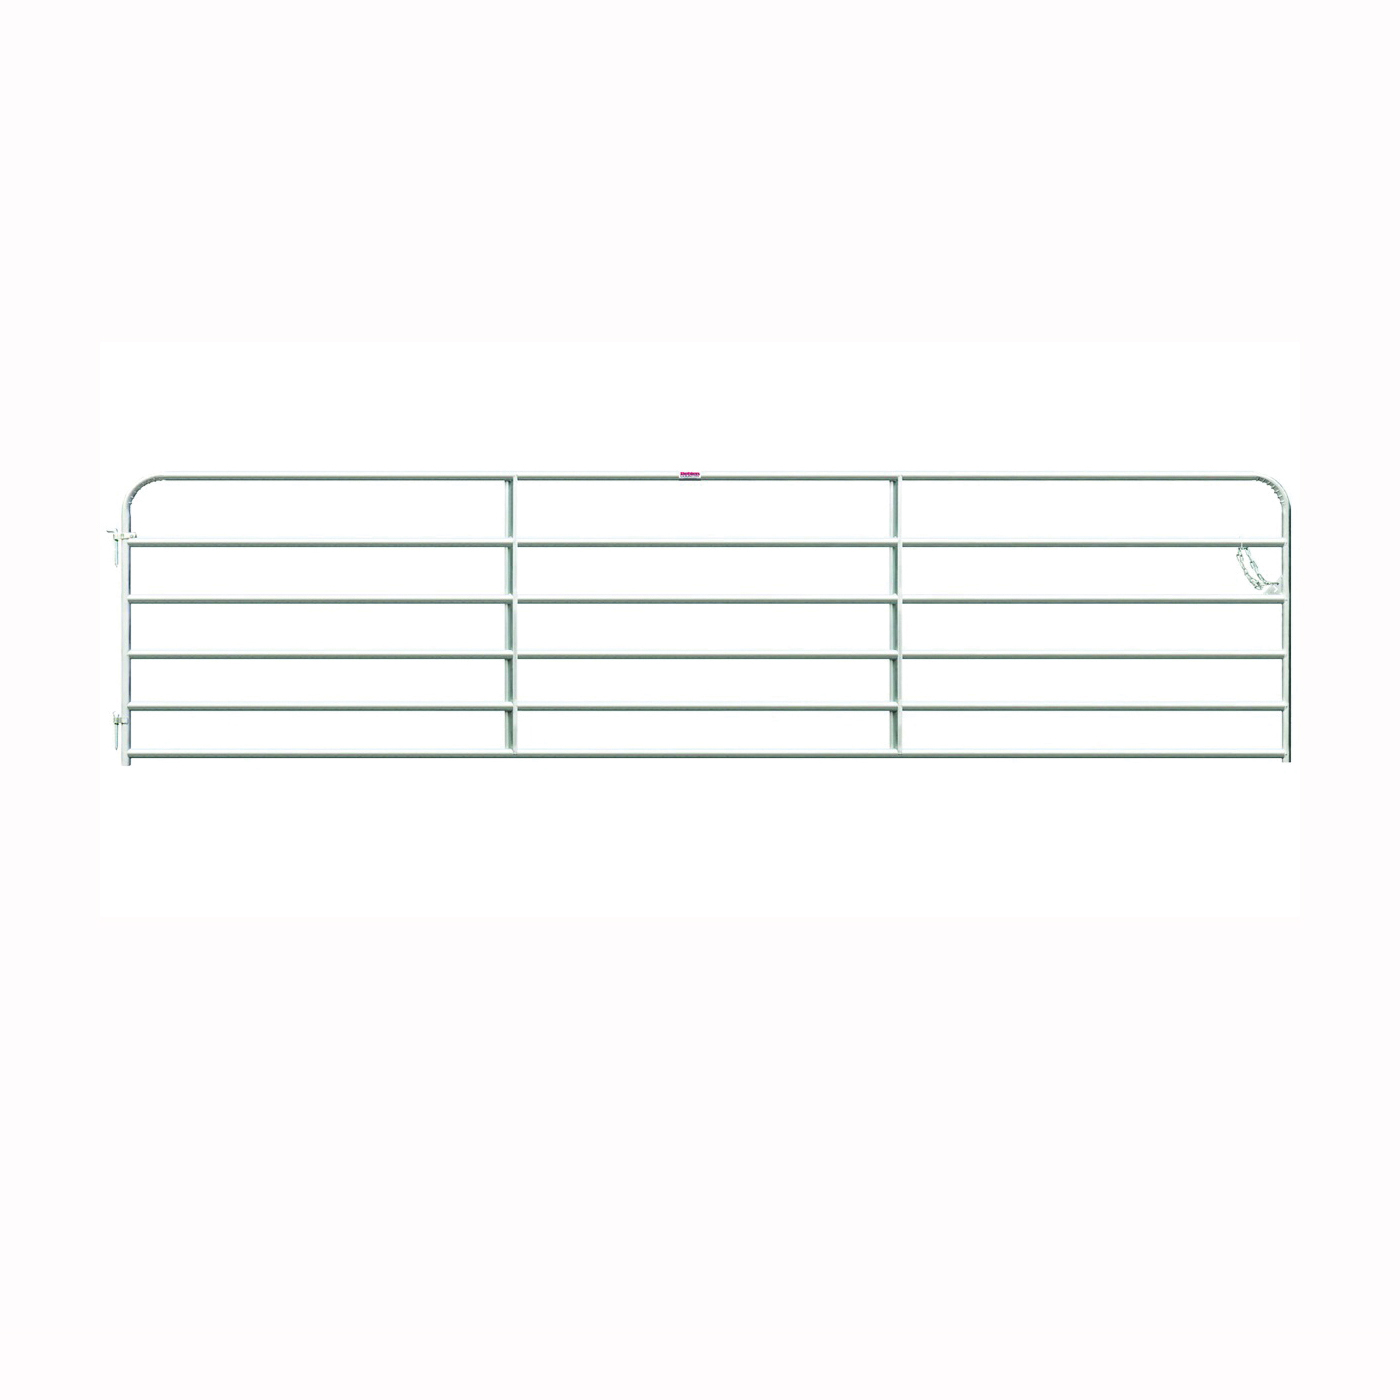 Picture of Behlen Country 40113148 Galvanized Gate, 168 in W Gate, 50 in H Gate, 20 ga Frame Tube/Channel, Steel Frame